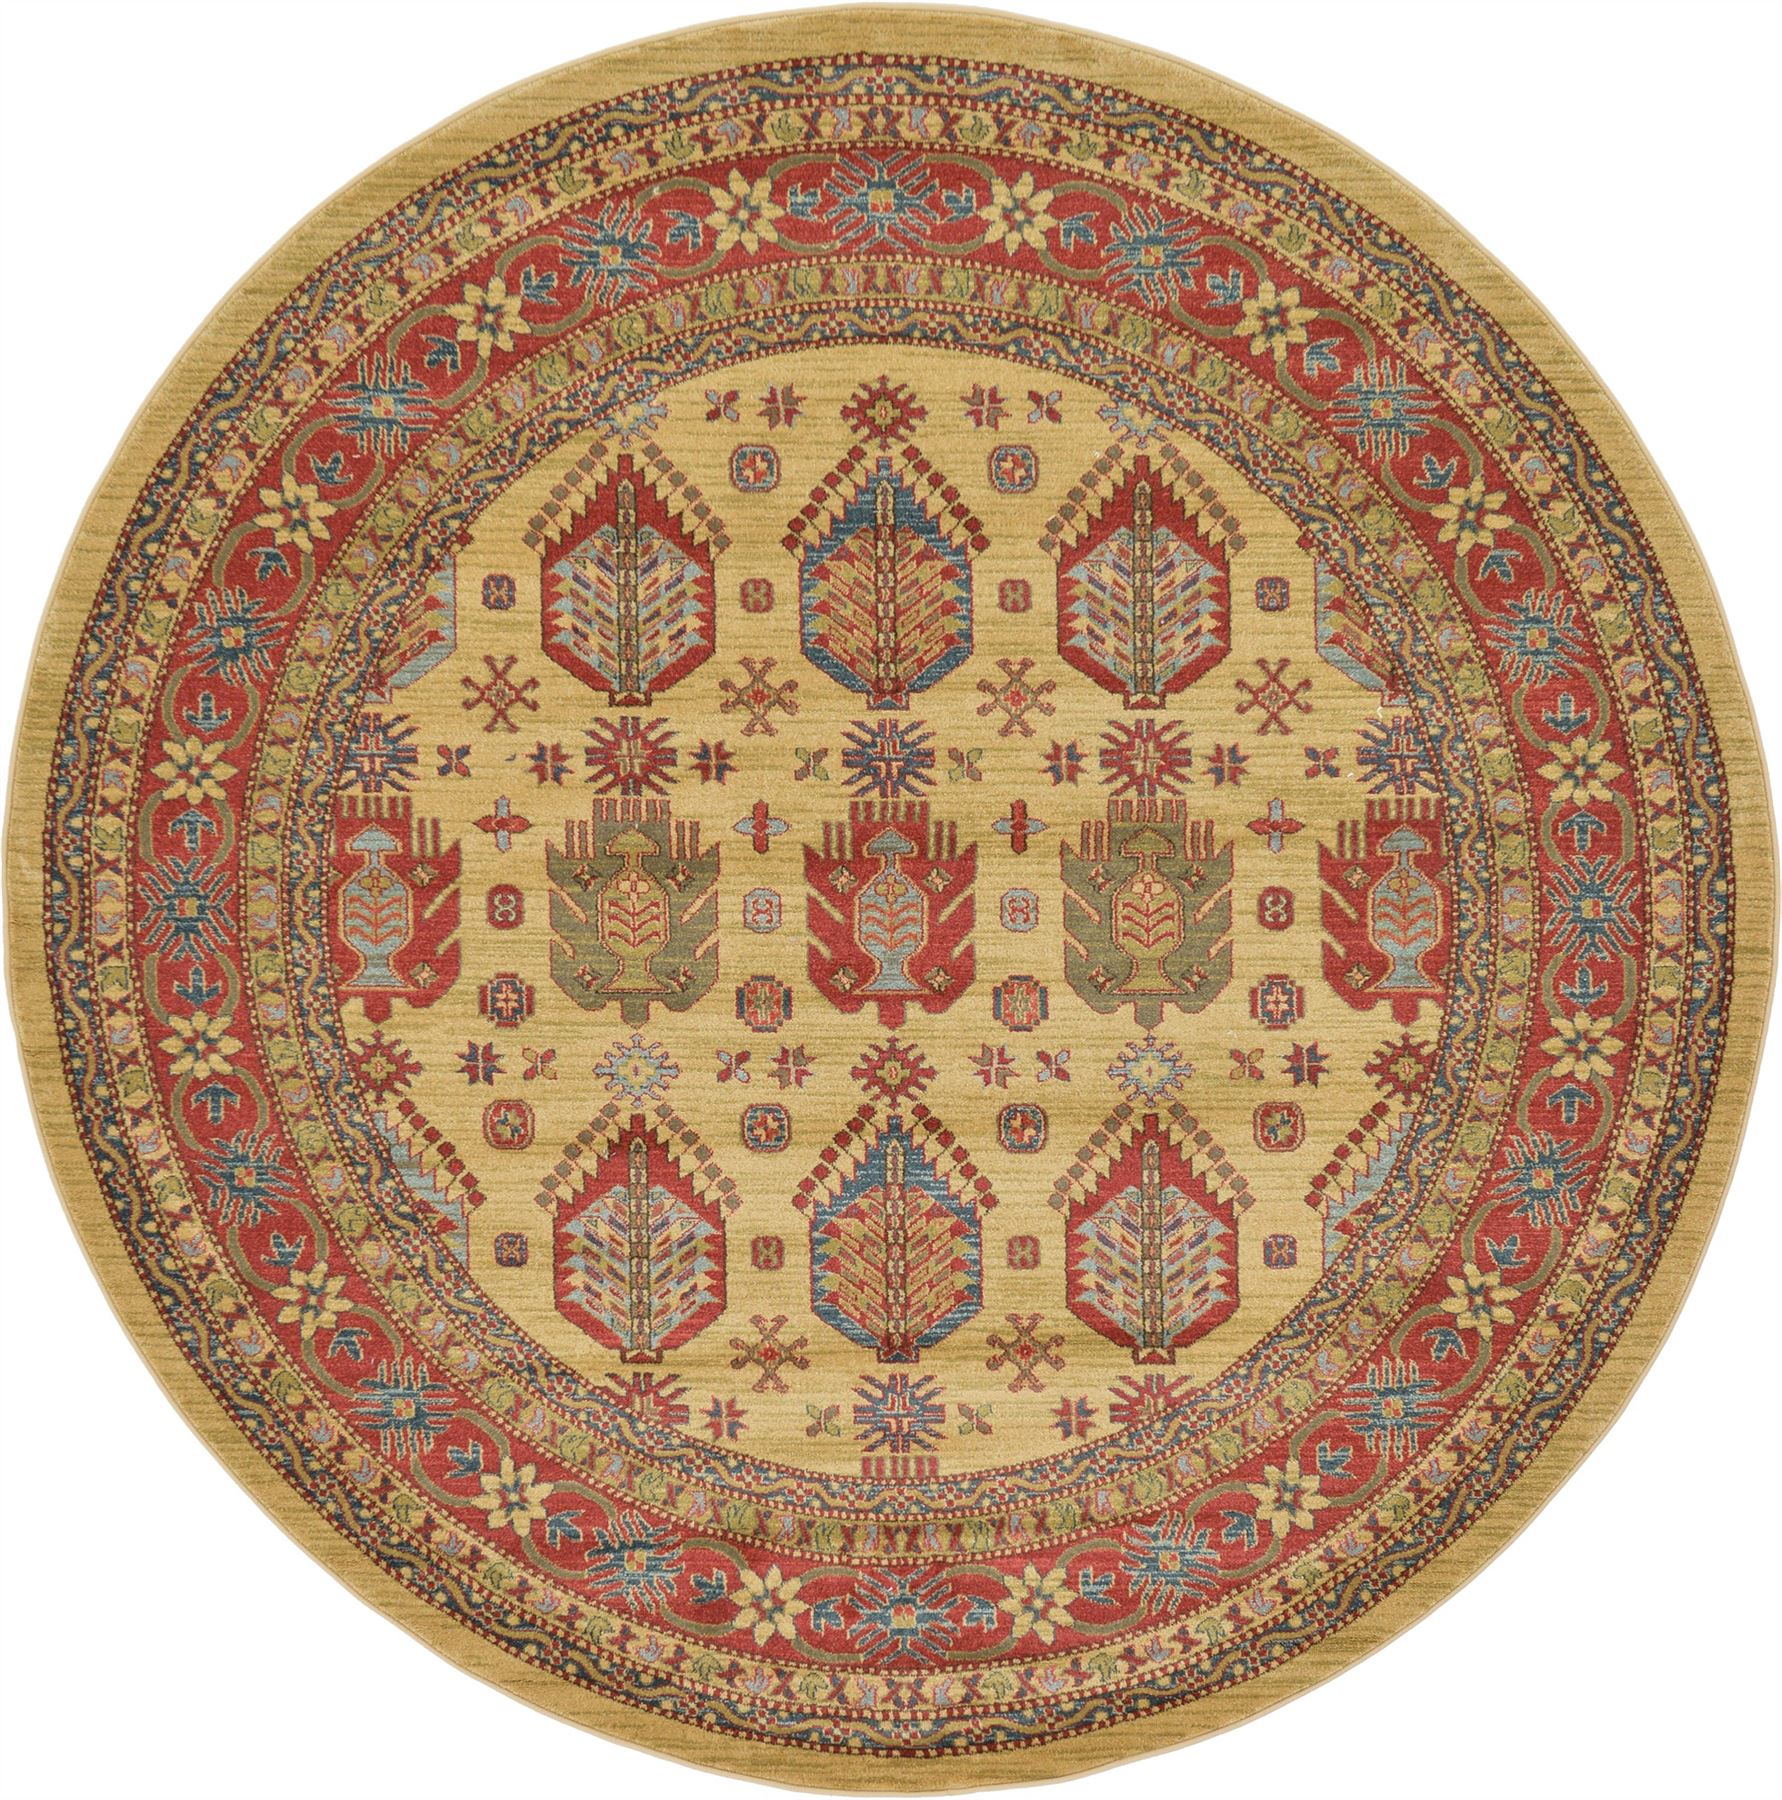 Persian Rugs: Heriz Design Rug Traditional Persian Style Rugs Clasic